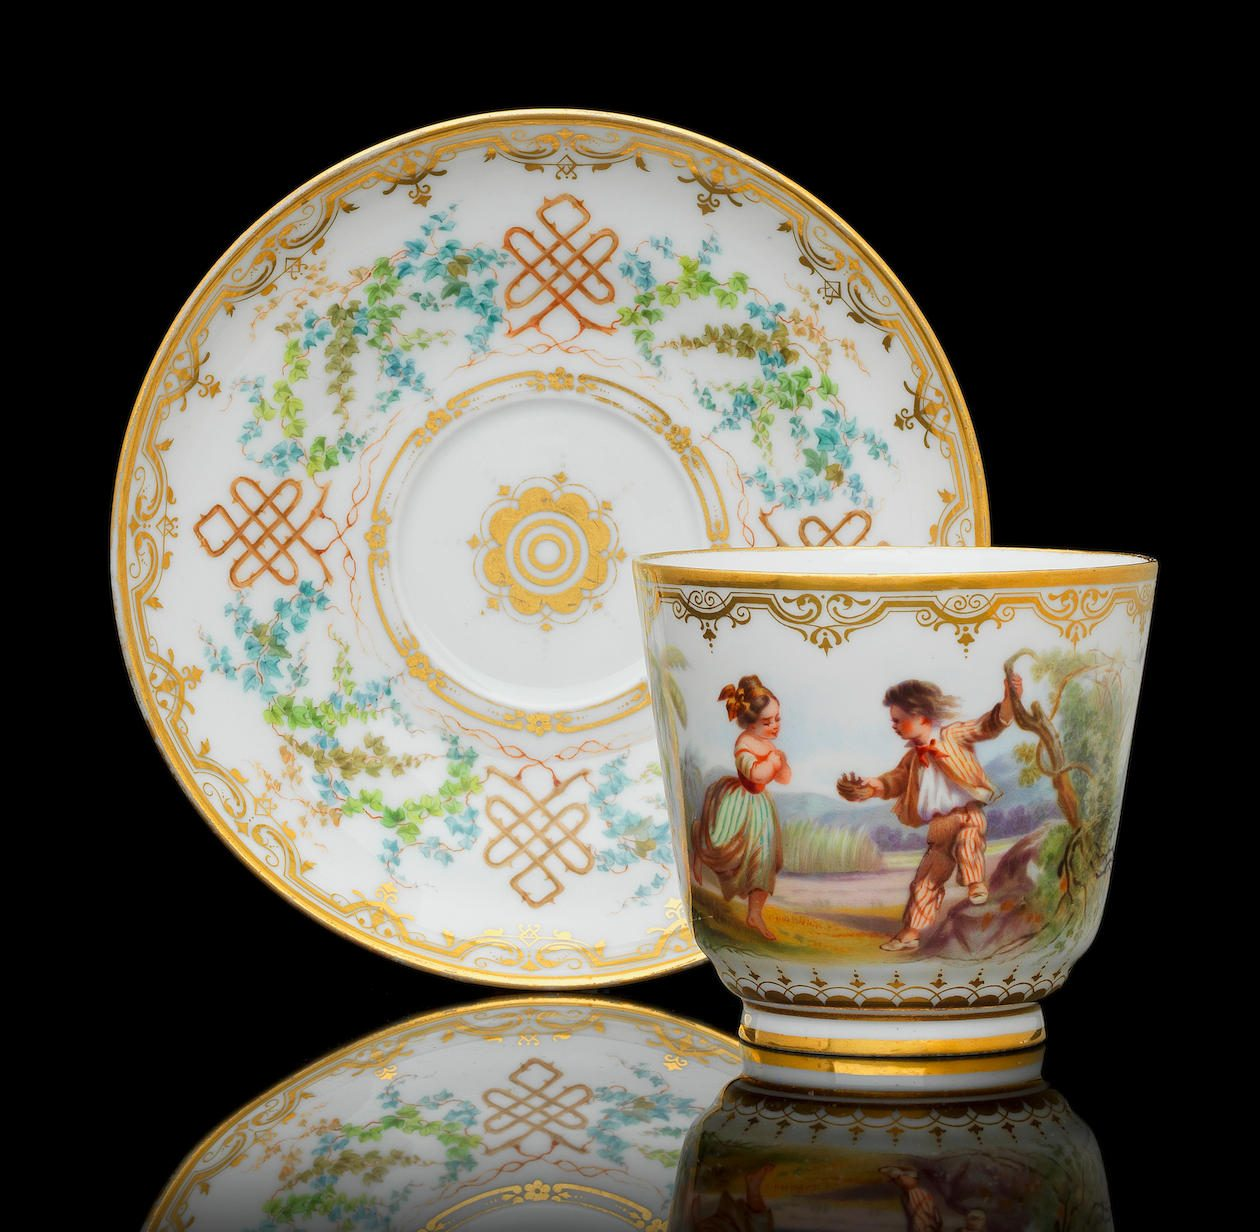 Russian Porcelain Cups and Saucers Price Guide - Antique